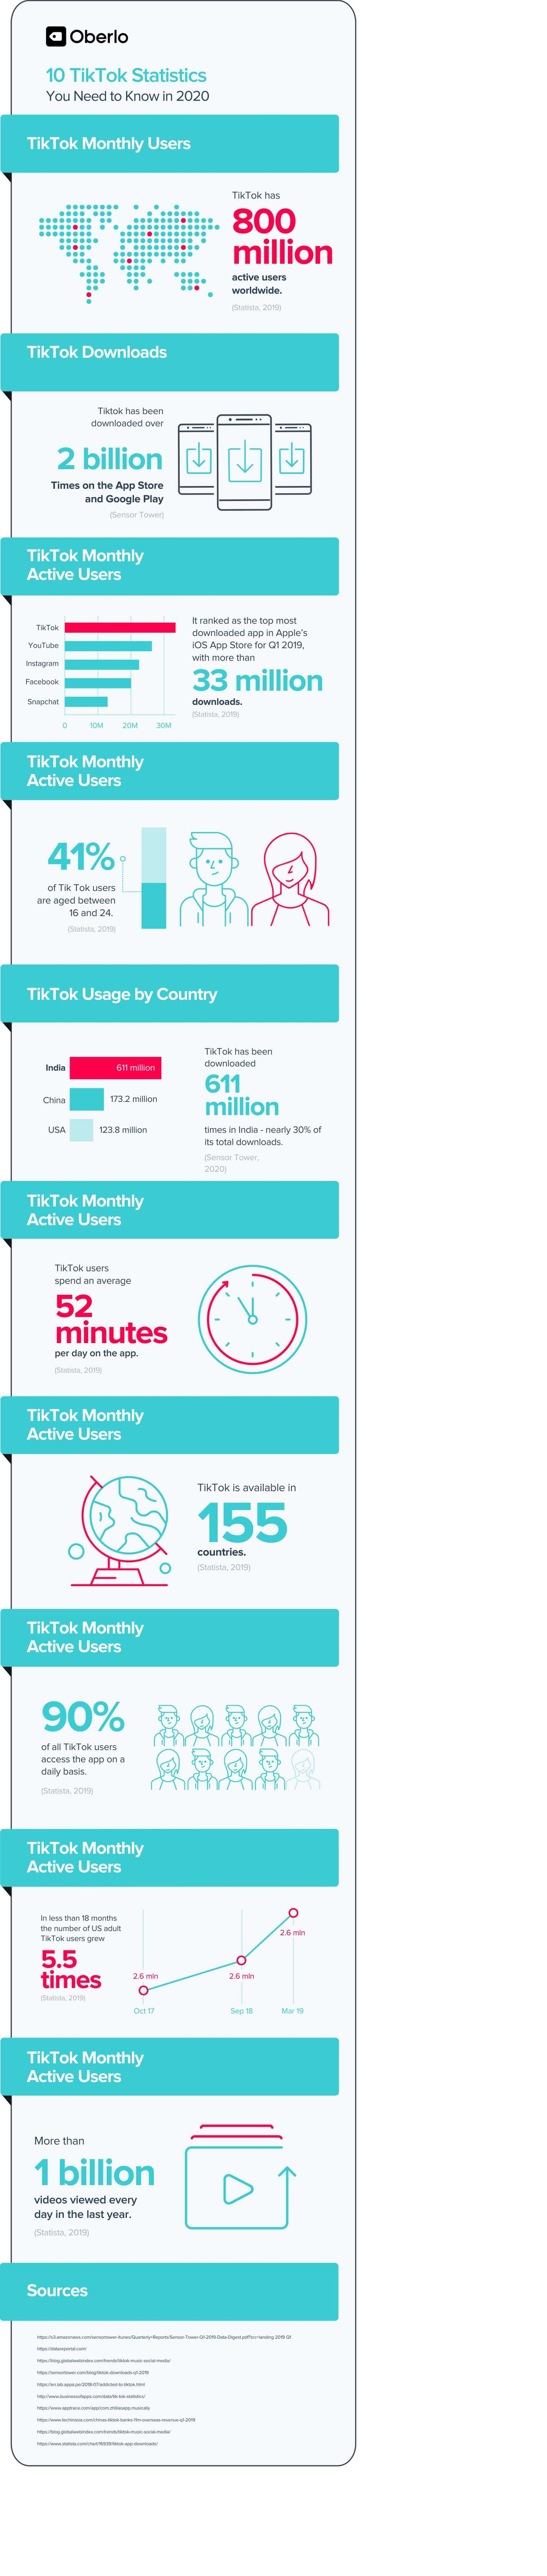 10 Tiktok Statistics You Need To Know In 2021 March Data Statistics Social Media Site Social Media